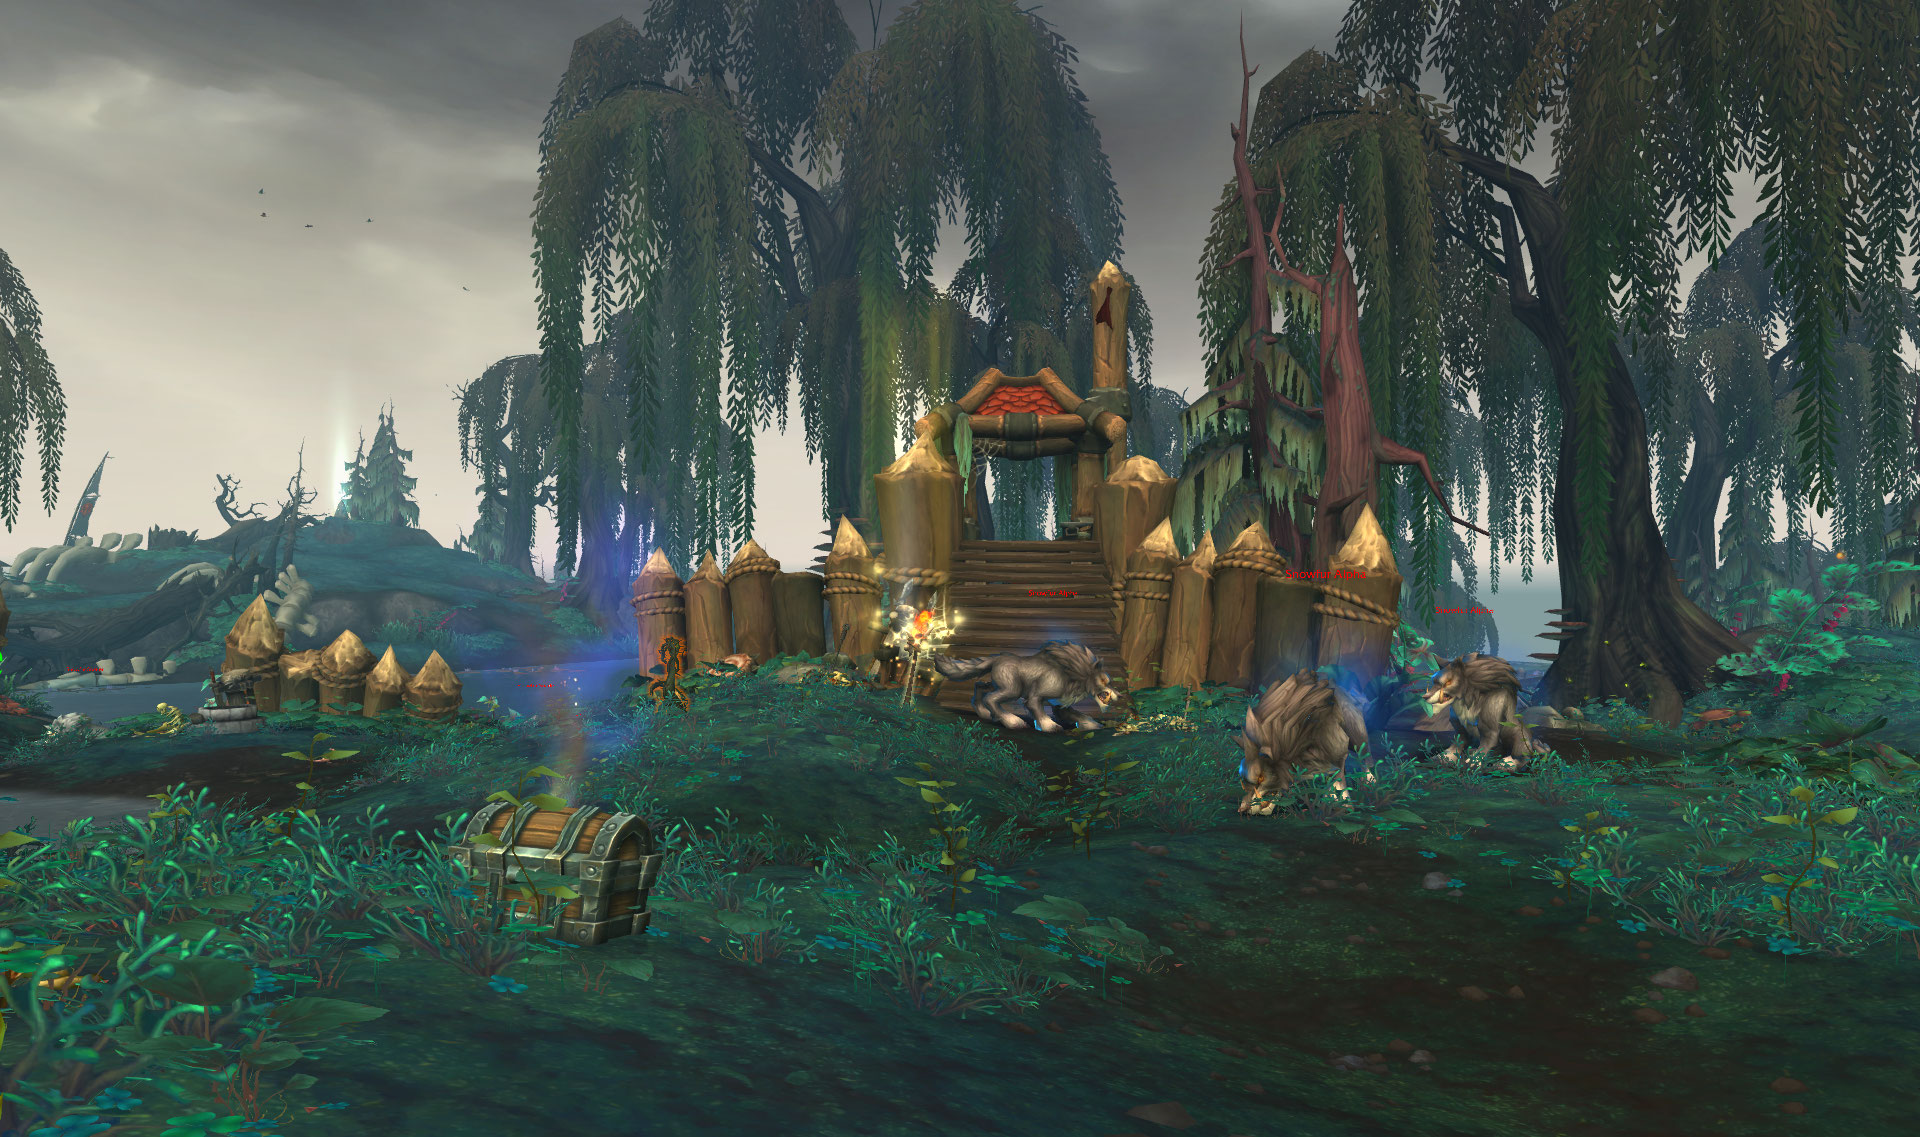 Screenshot de l'île de l'affliction (Crestfall) du patch 8.2 de World of Warcraft.